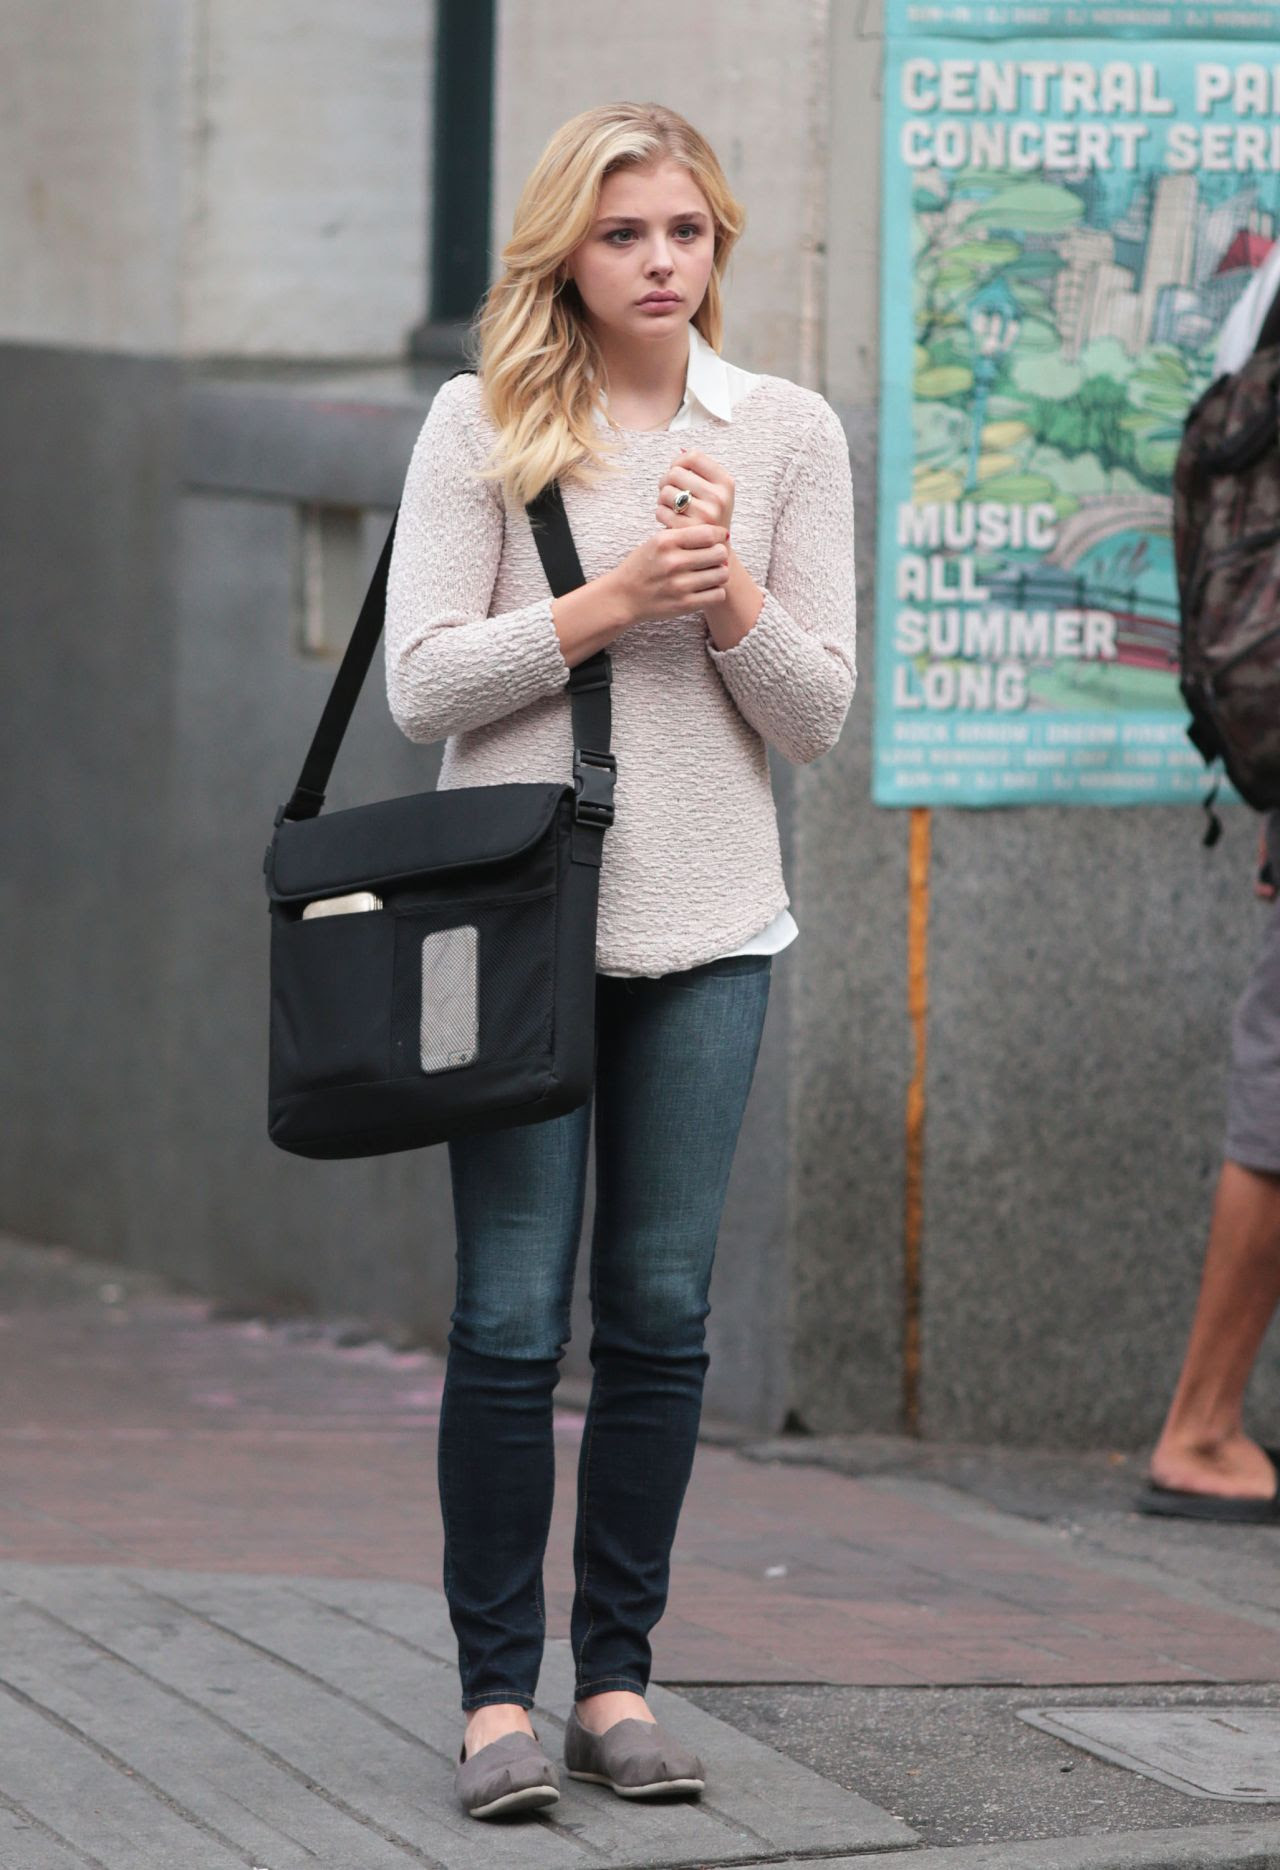 http://celebmafia.com/wp-content/uploads/2015/07/chloe-moretz-set-of-brain-on-fire-in-vancouver-july-2015_7.jpg